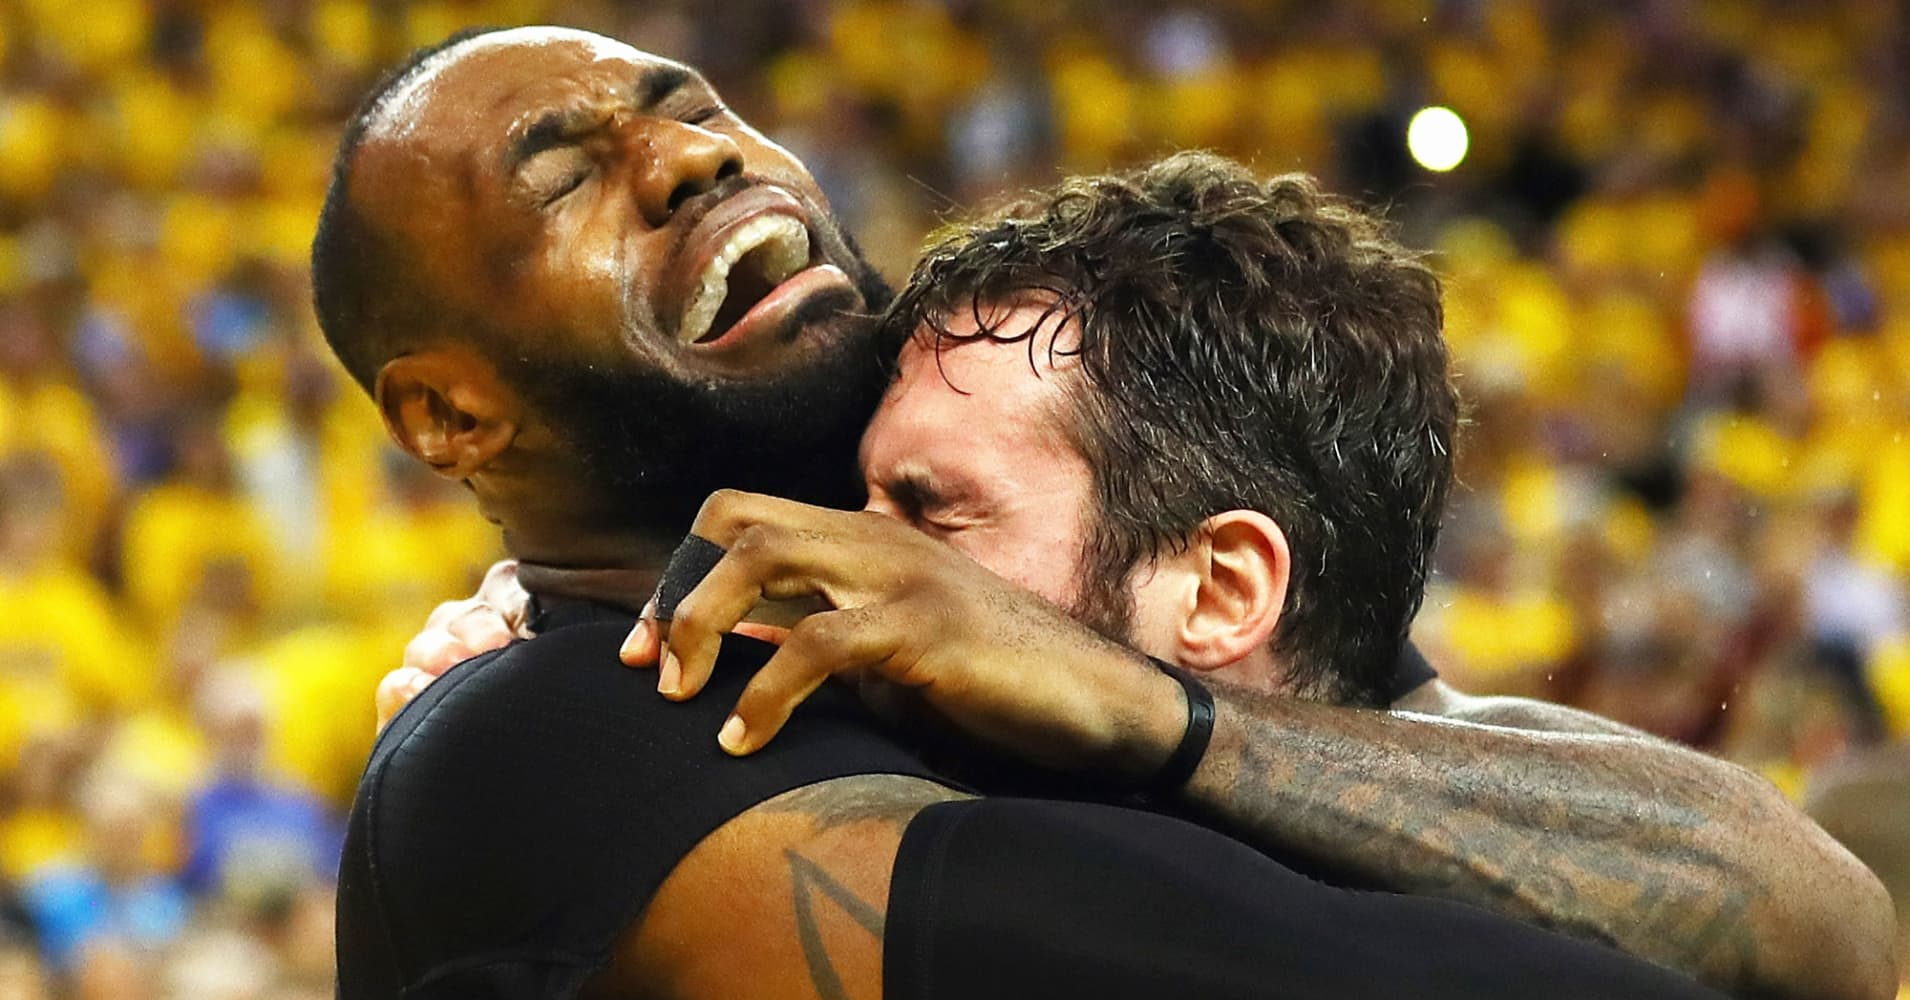 LeBron James and Kevin Love of the Cleveland Cavaliers celebrate after defeating the Golden State Warriors 93-89 in Game 7 of the 2016 NBA Finals at ORACLE Arena on June 19, 2016 in Oakland.